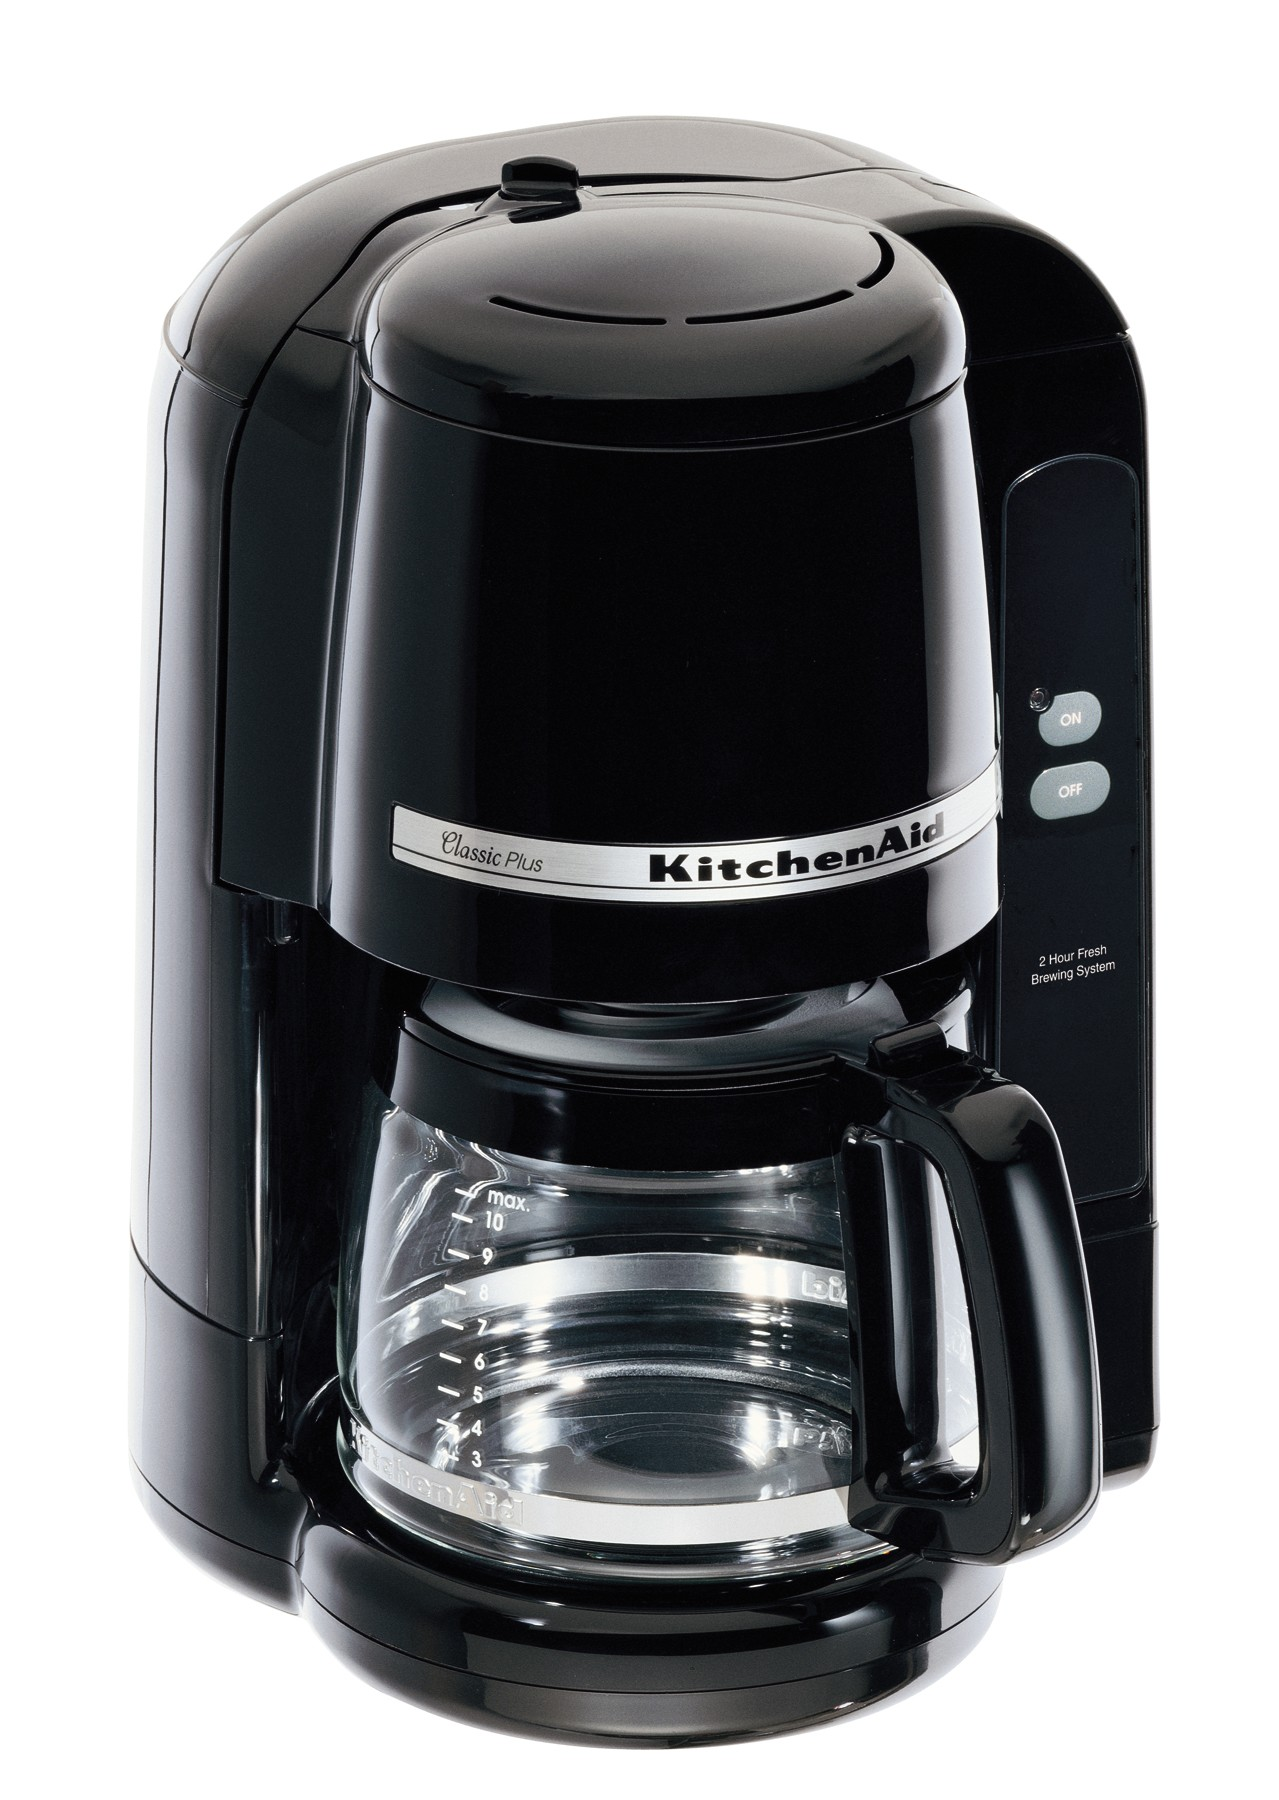 picture of recalled coffeemaker 10cup model black